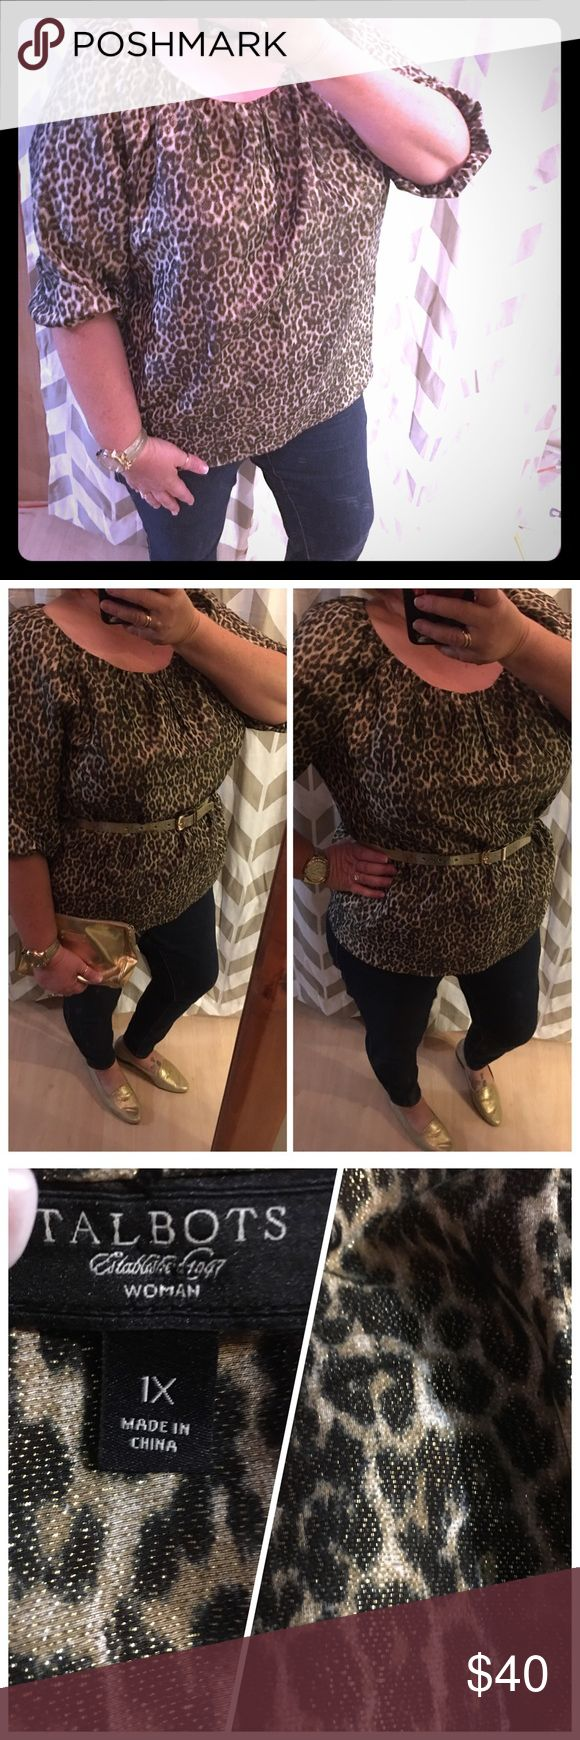 🛍Just In🛍 Talbots Leopard Print Sparkly Blouse This is a beautiful blouse the pictures really can't show how pretty it is.  Wore it just once to a holiday party.  It's 3/4 sleeves with a scoop type neck Talbots Tops Blouses